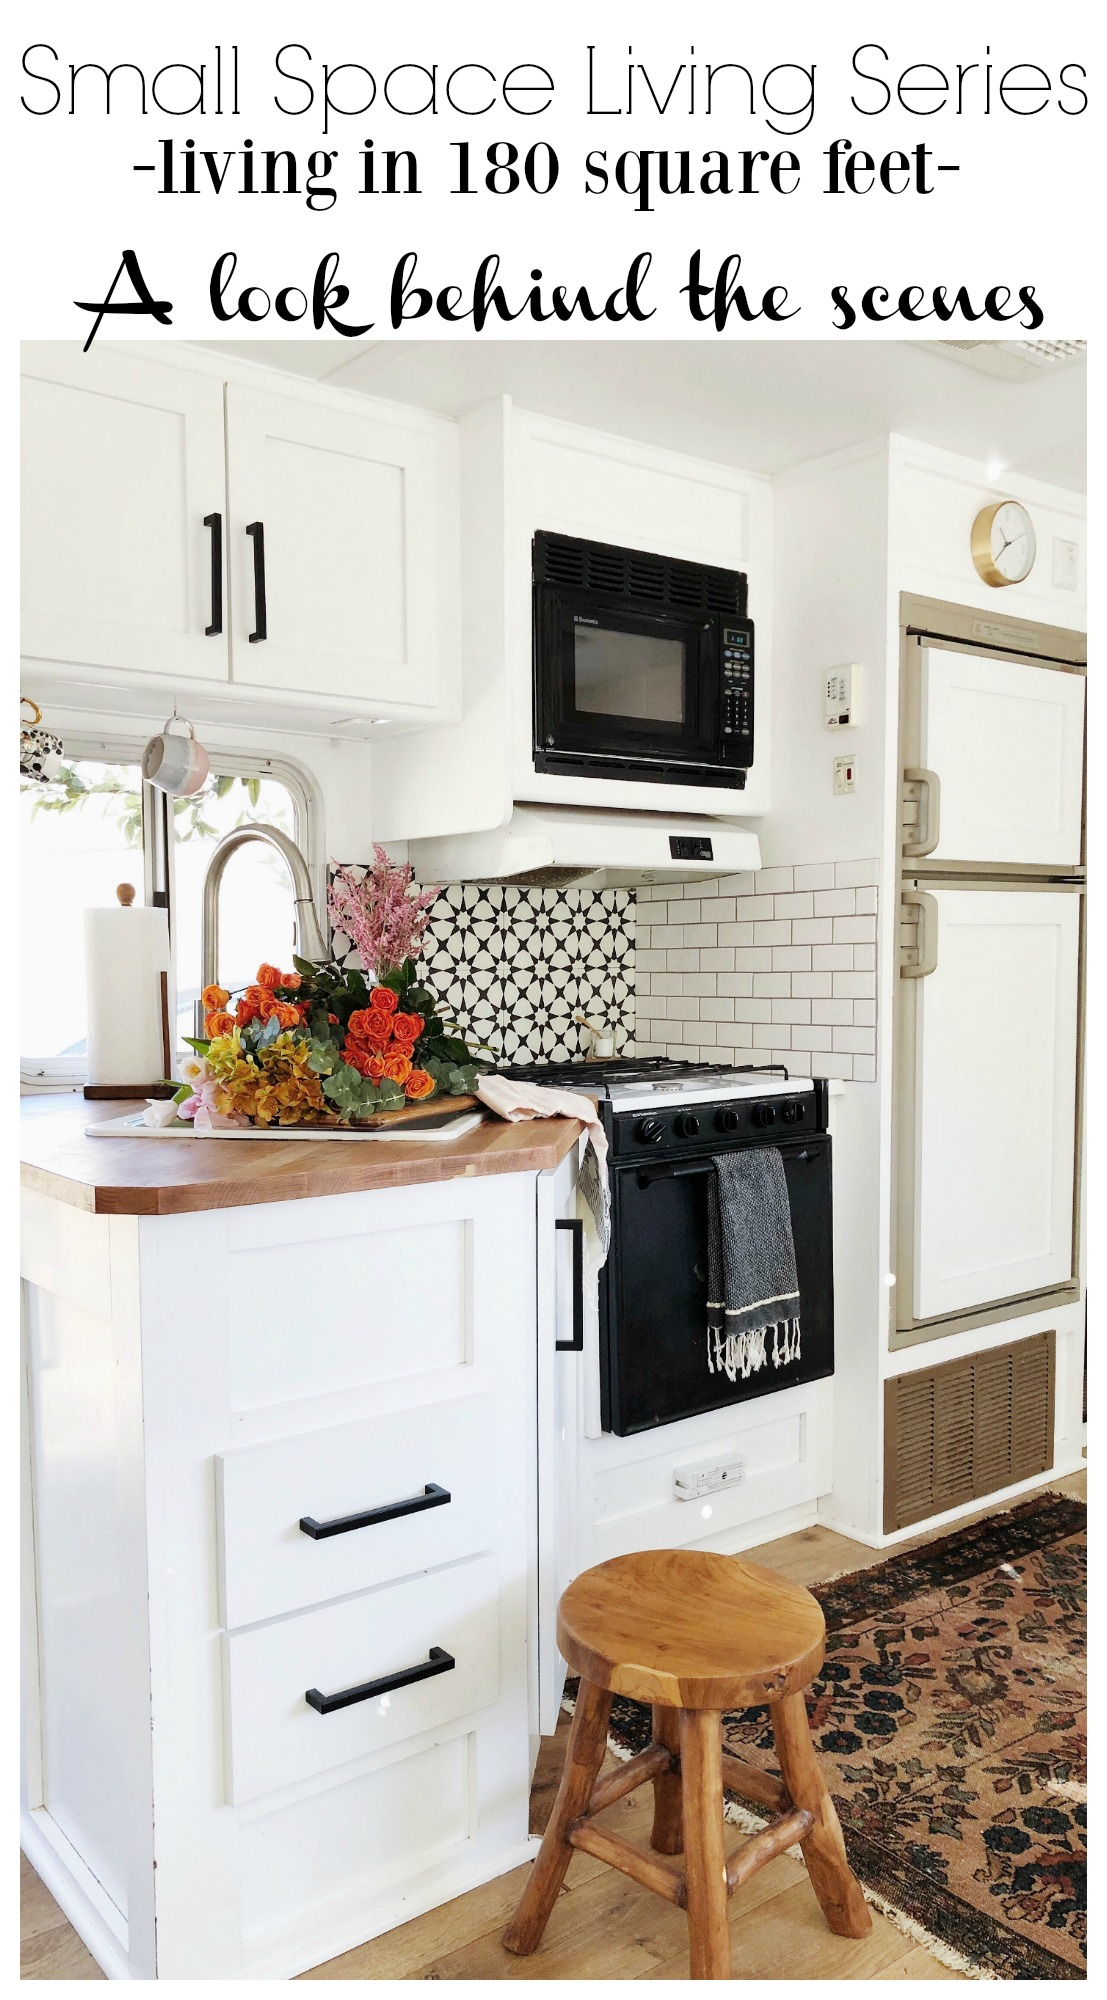 Small Space Living Series- Living in 180 Square Feet